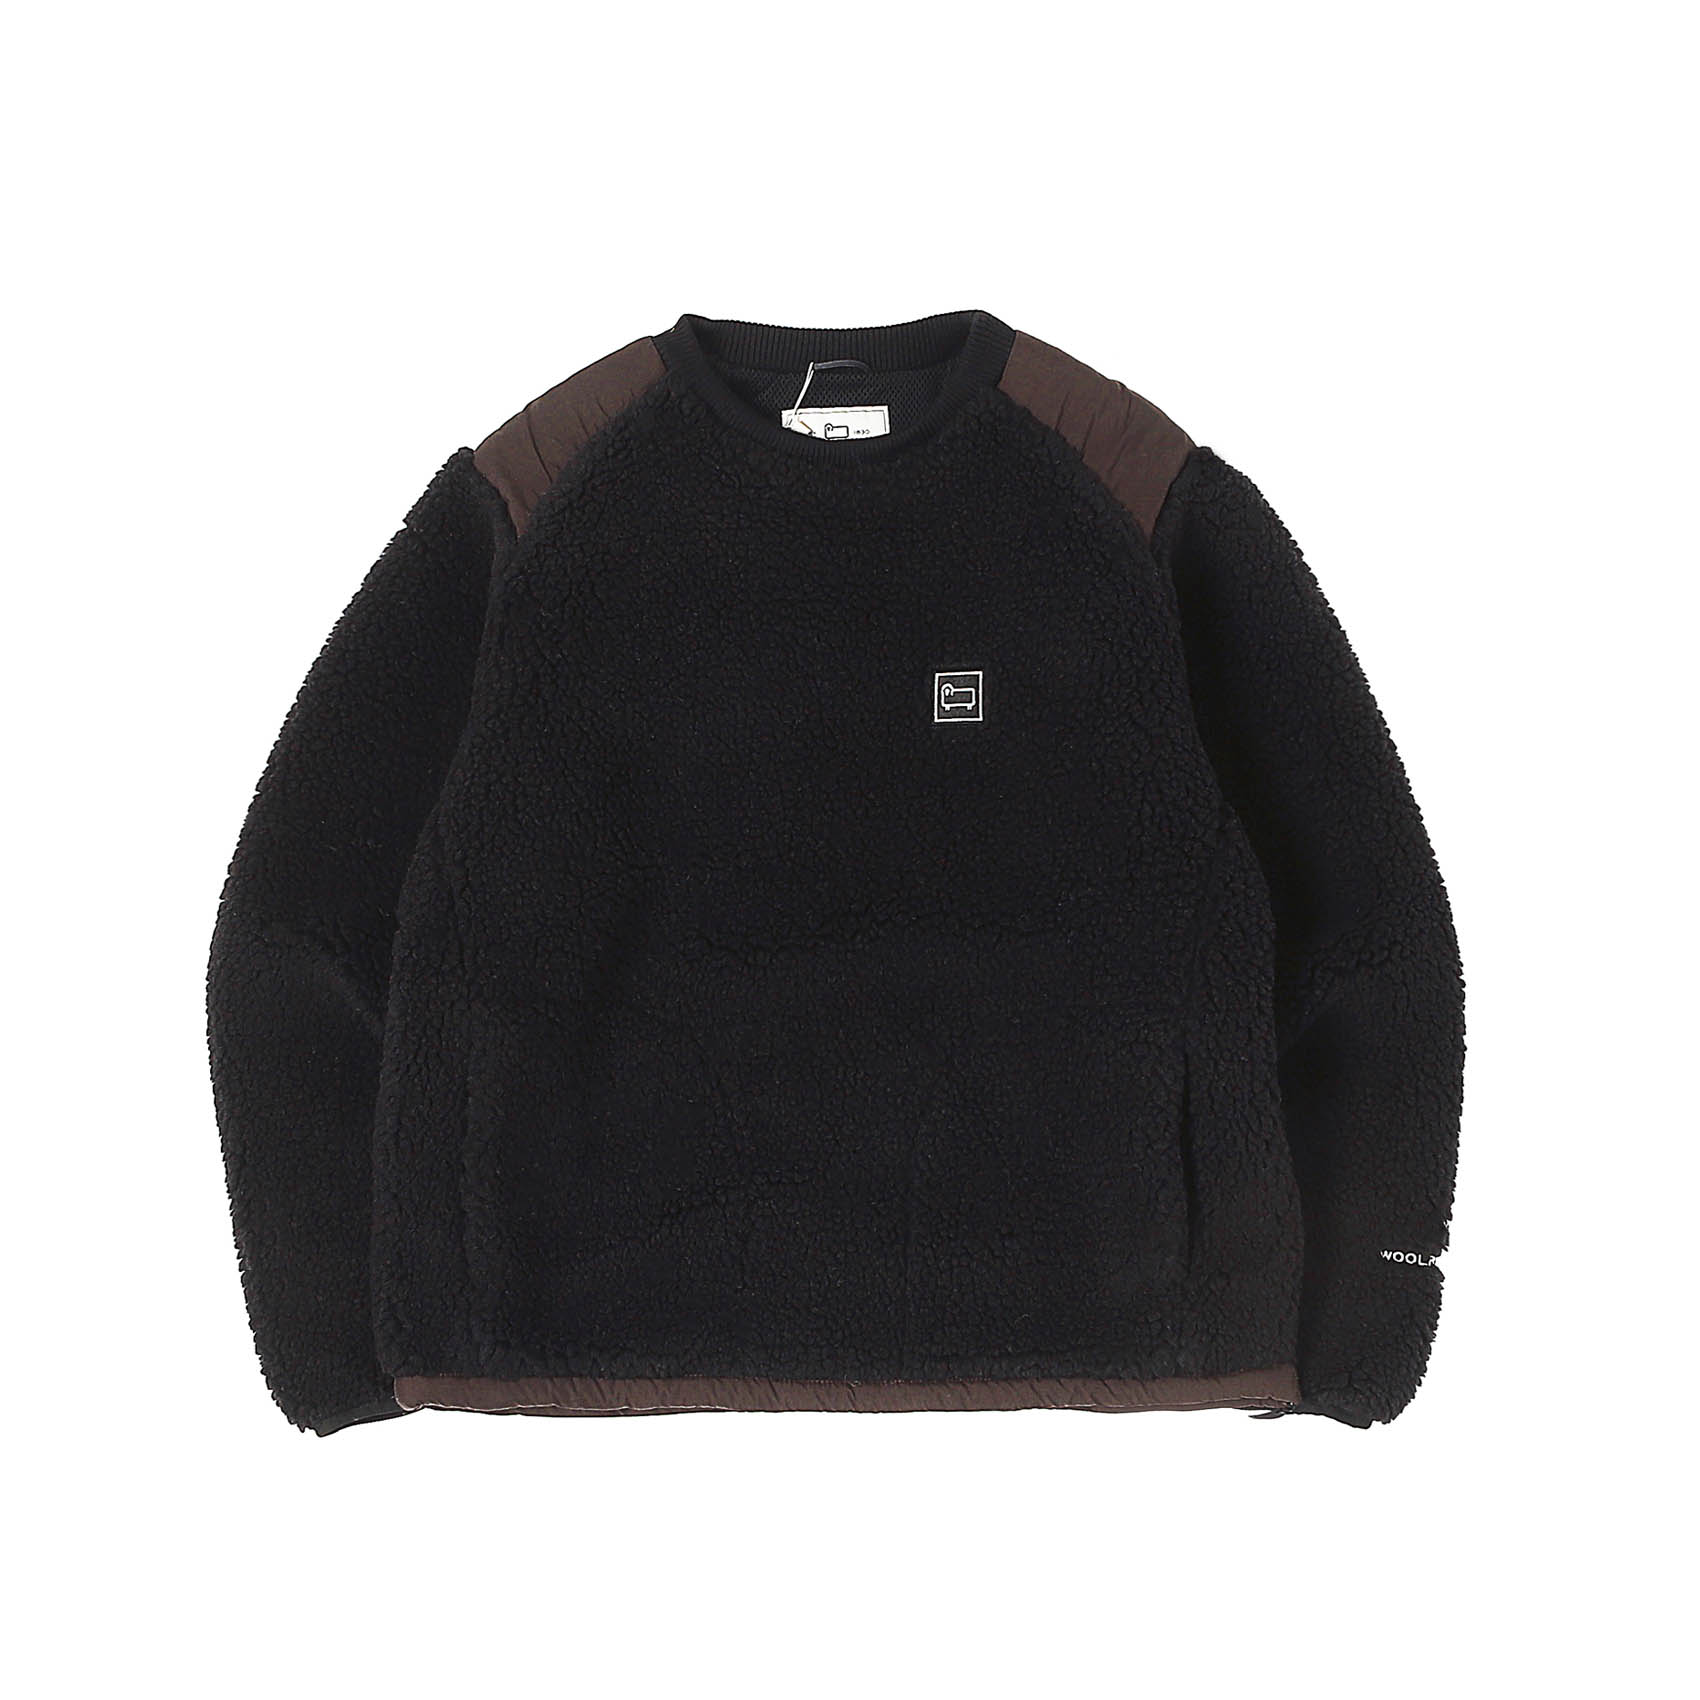 TERRA PILE FLEECE PULLOVER - BLACK